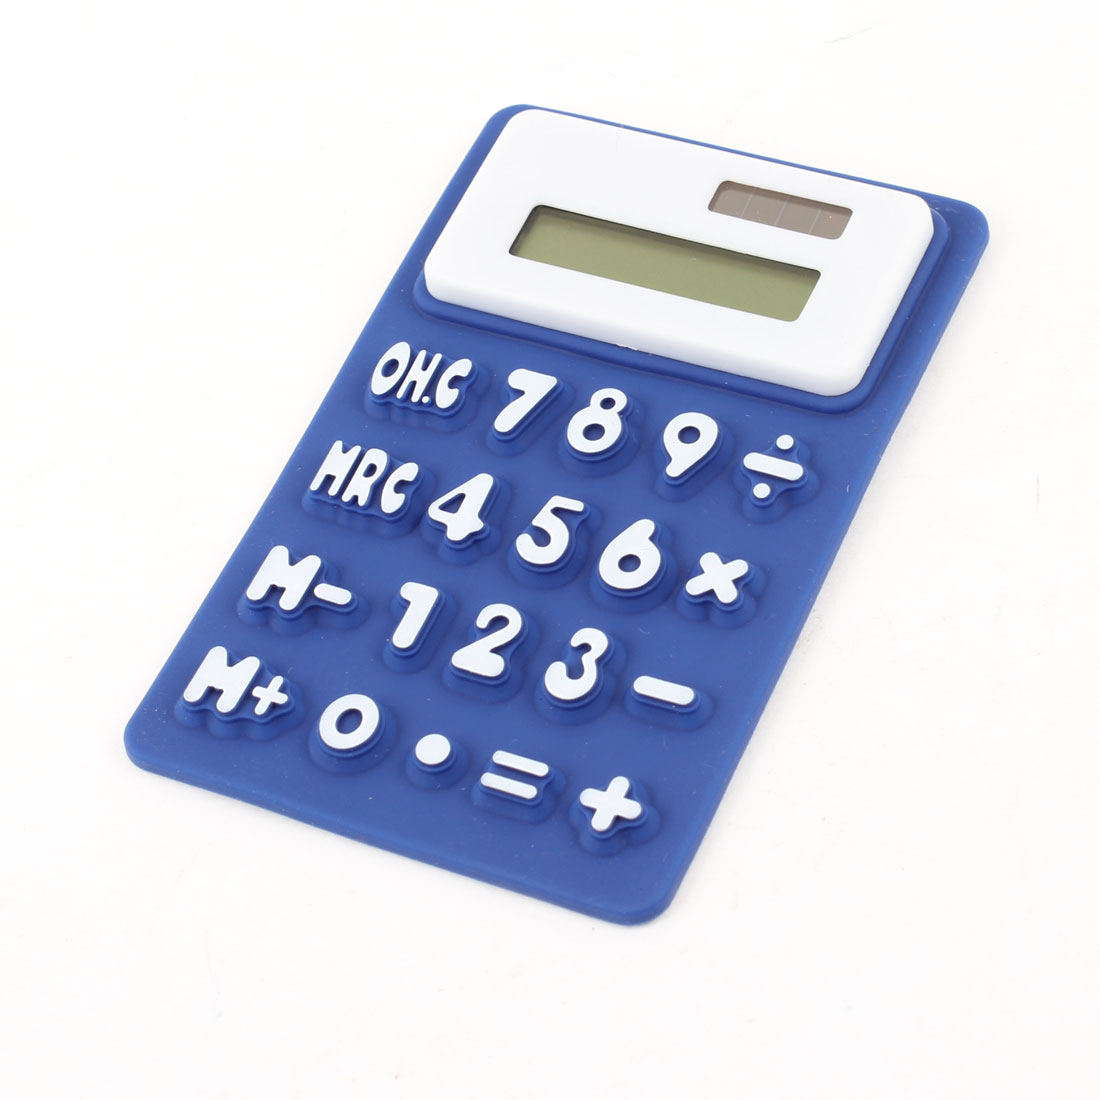 Students School Rectangle Shaped 8 Digits Flexible Calculator White Blue